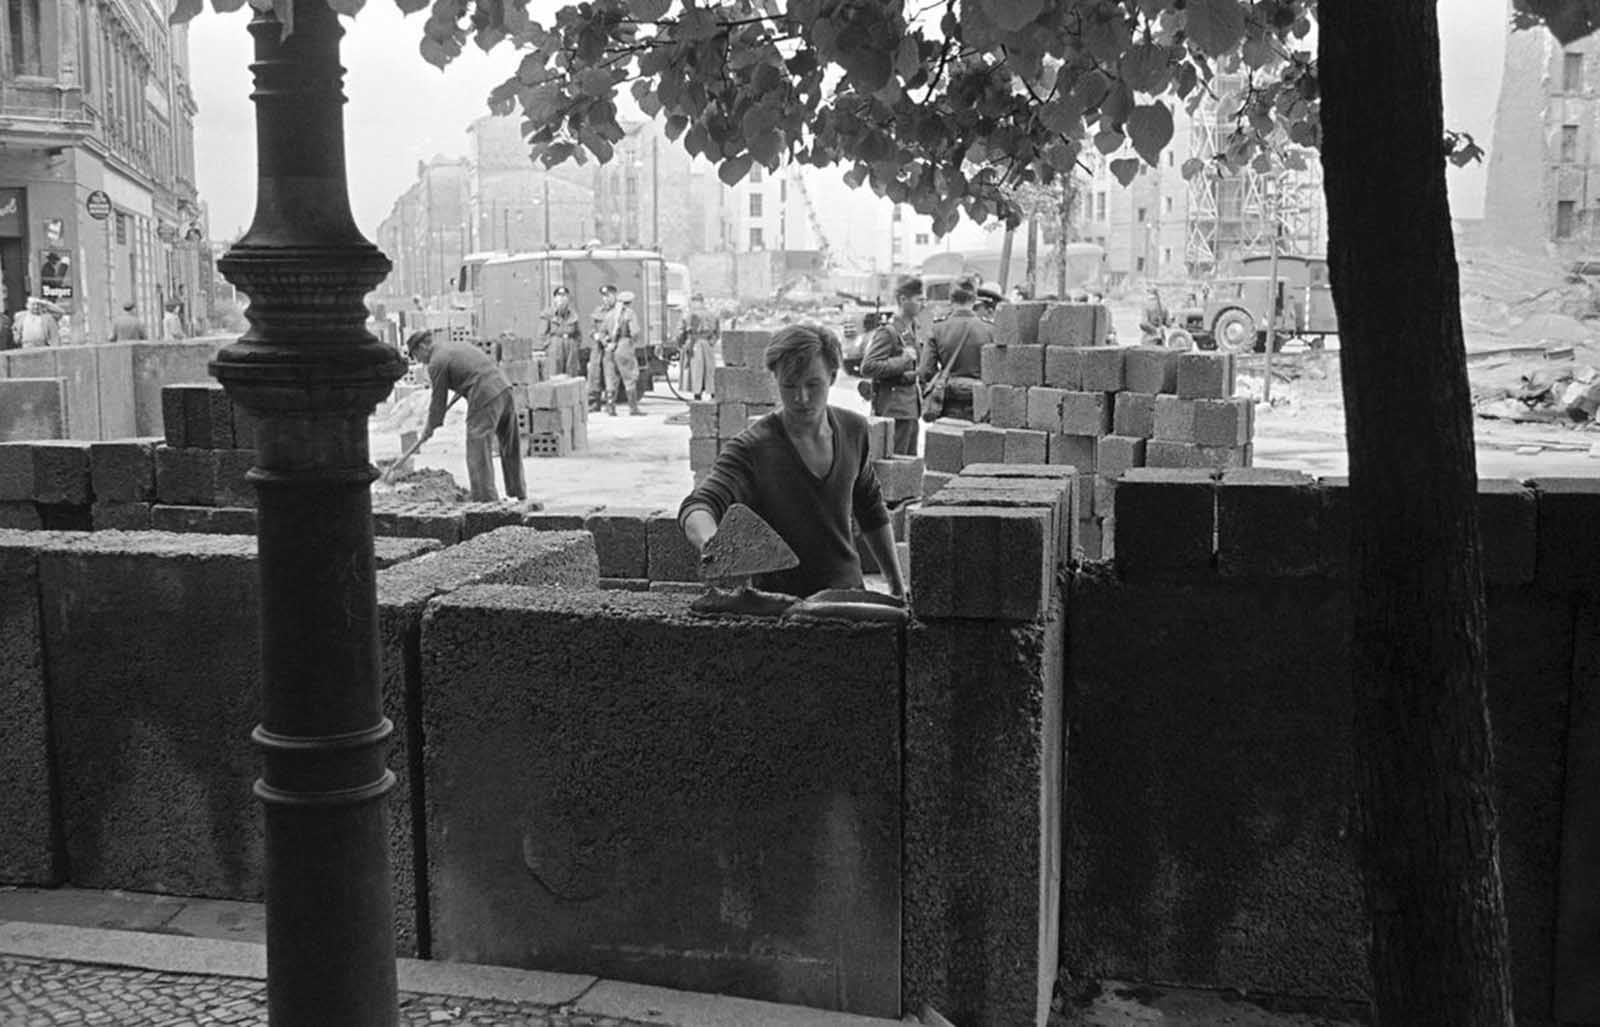 A young East Berliner erects a concrete wall that was later topped by barbed wire at a sector border in the divided city August 18, 1961. East German police stand guard in background as another worker mixed cement.